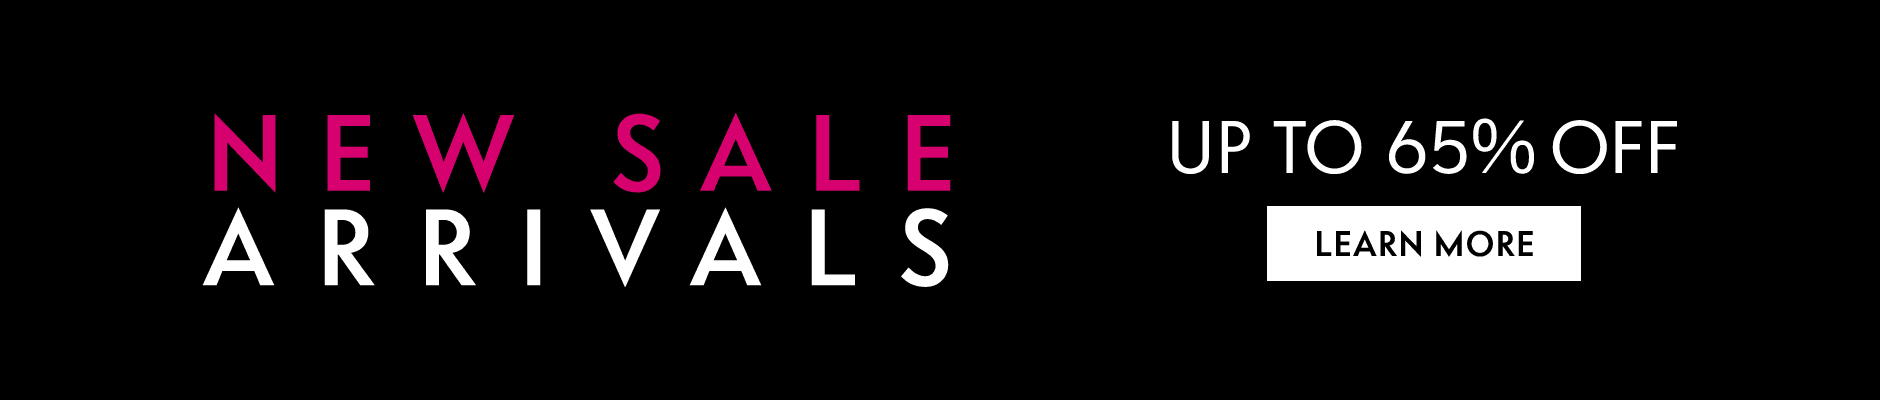 New Sale Arrivals - Up to 65% off